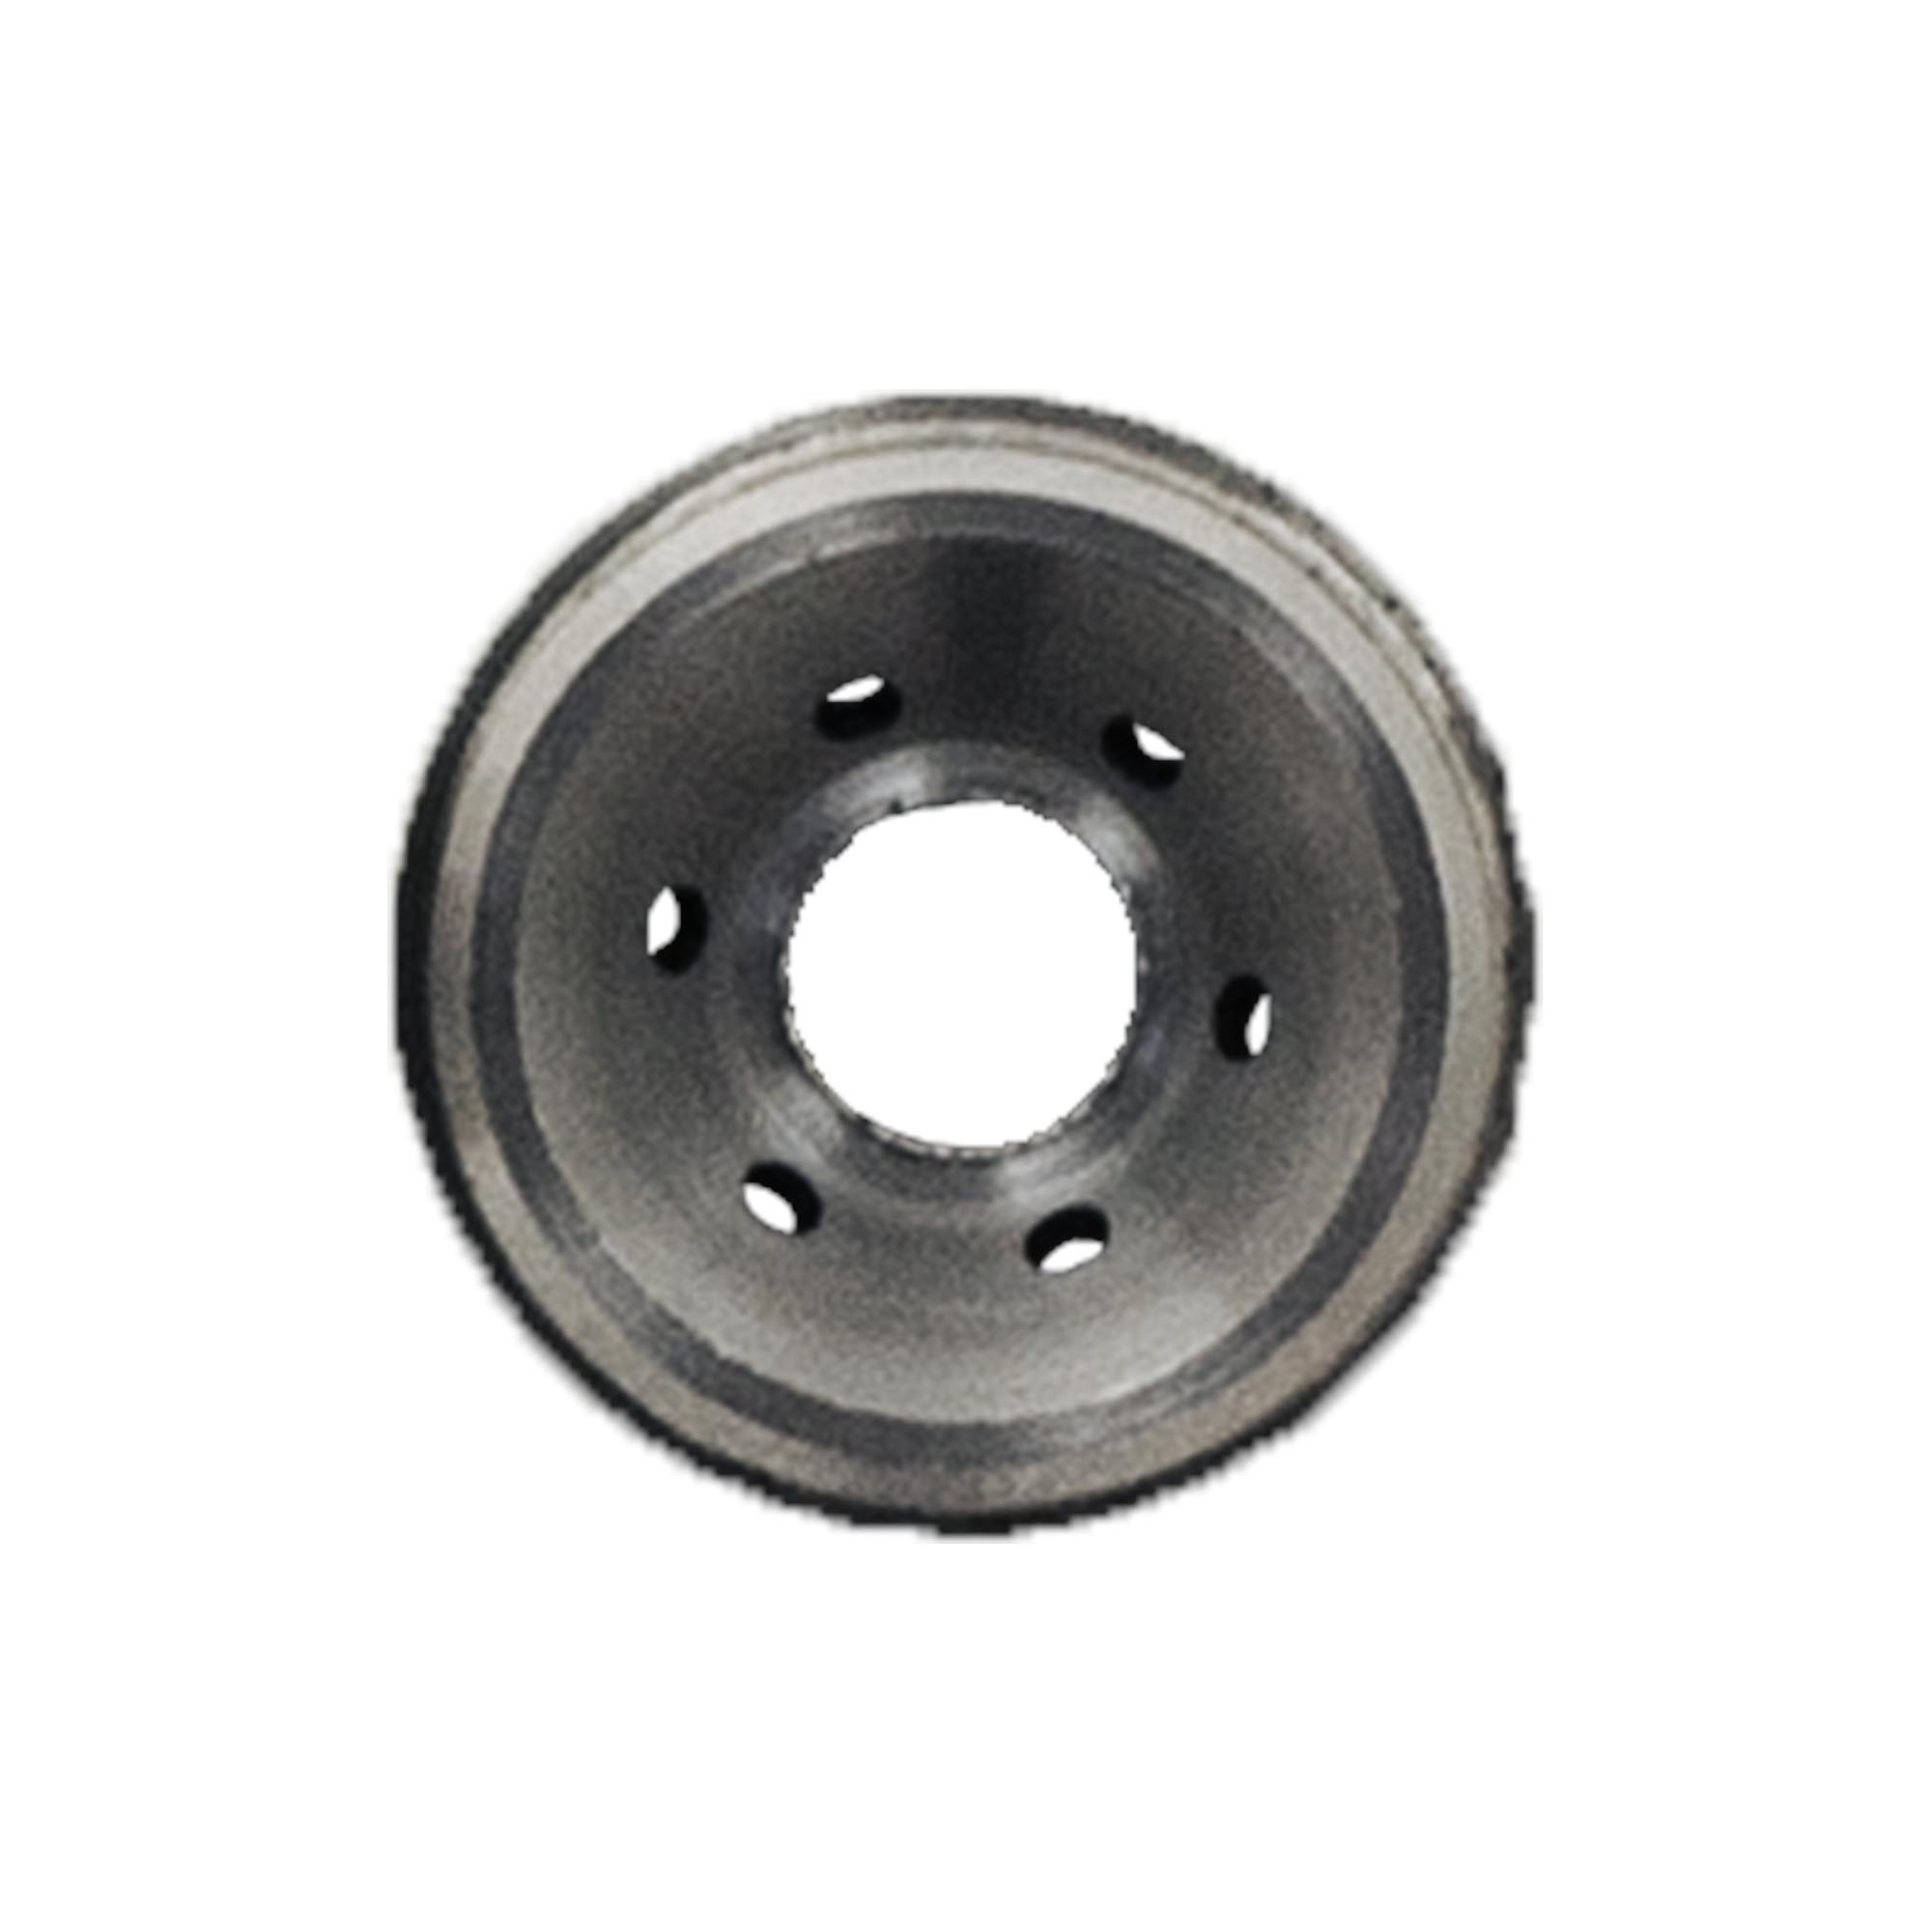 Model 901203-R30 Air Cap for ER1050SS